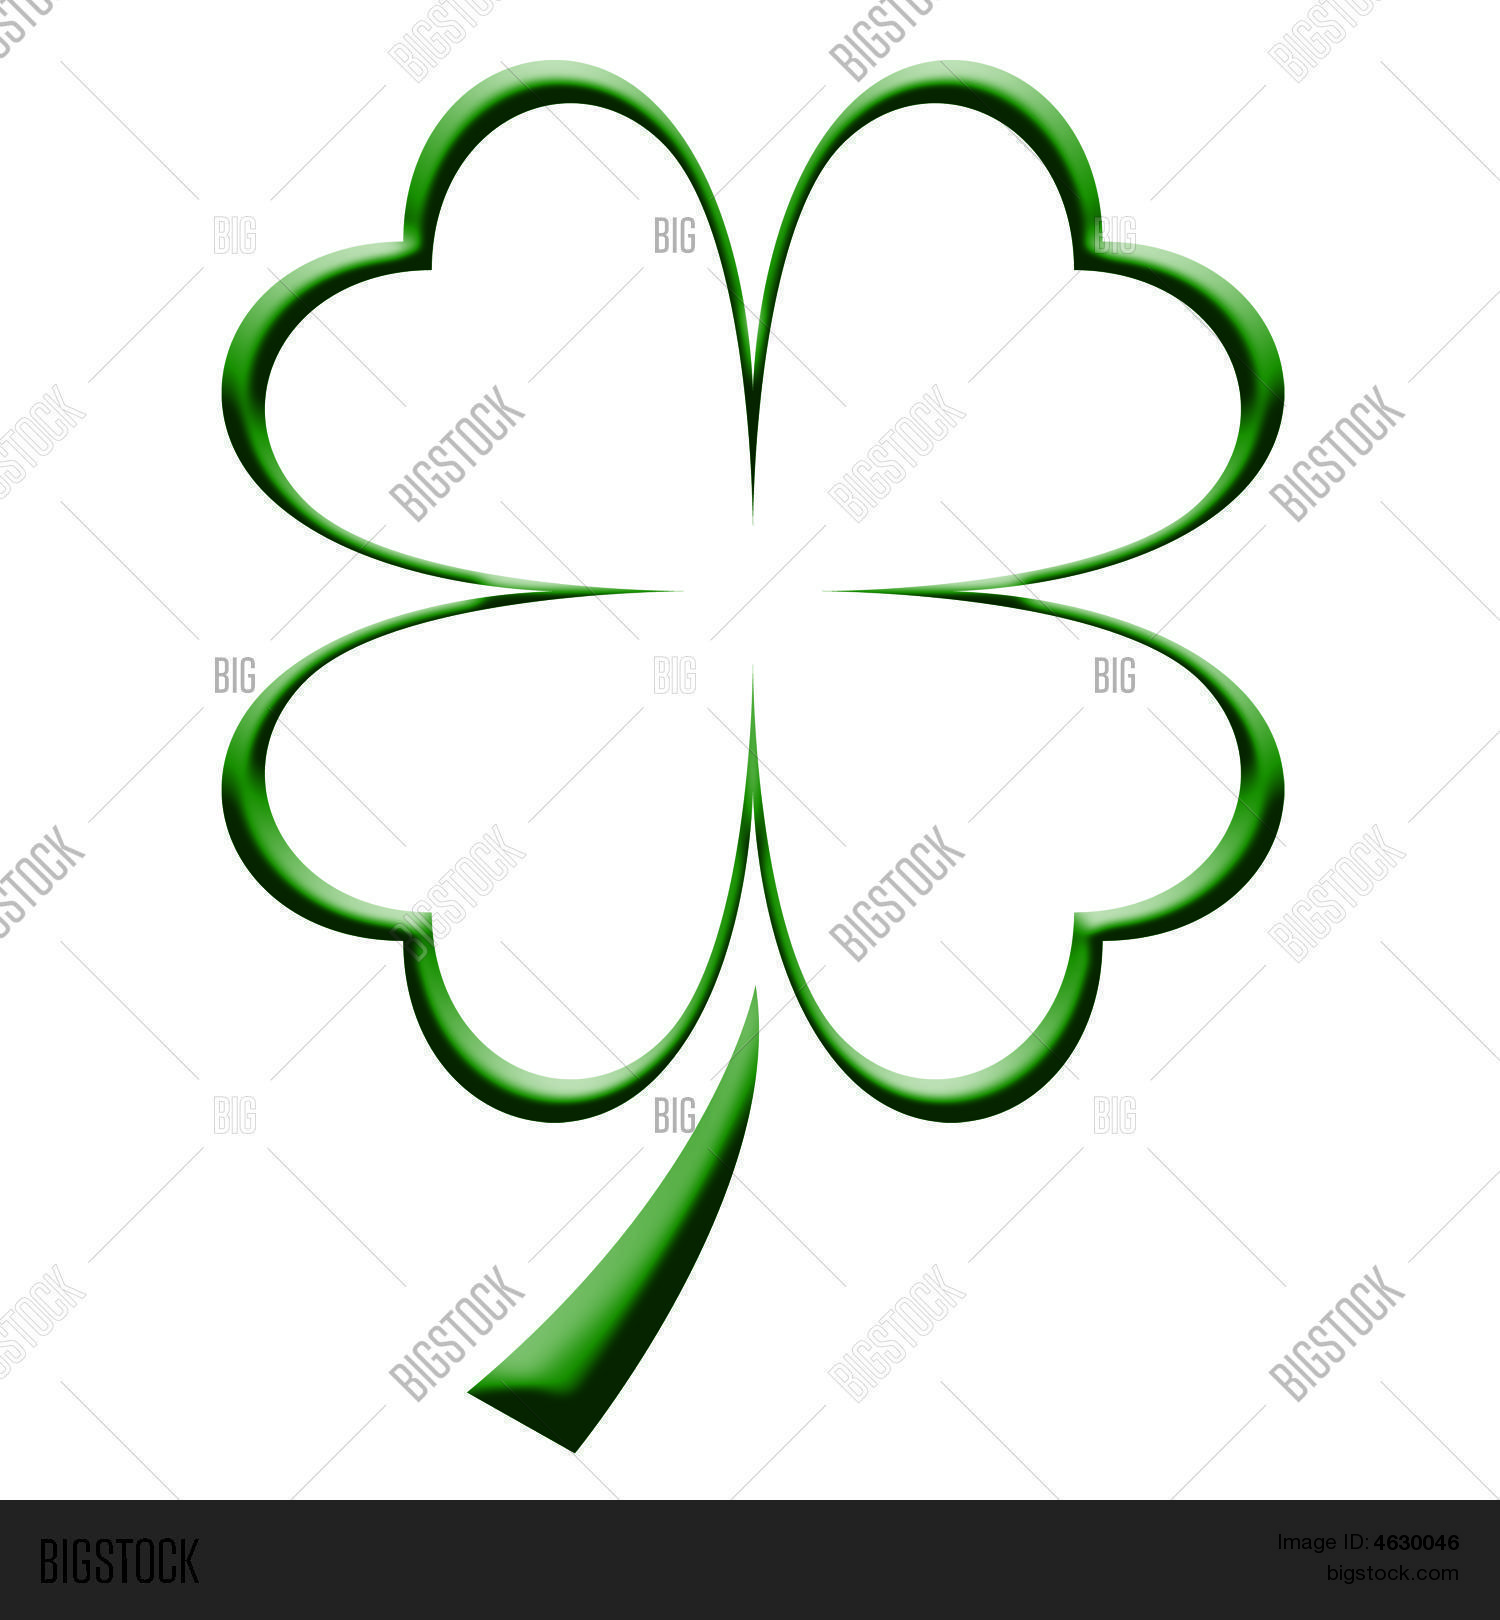 Four Leaf Clover Image Amp Photo Free Trial